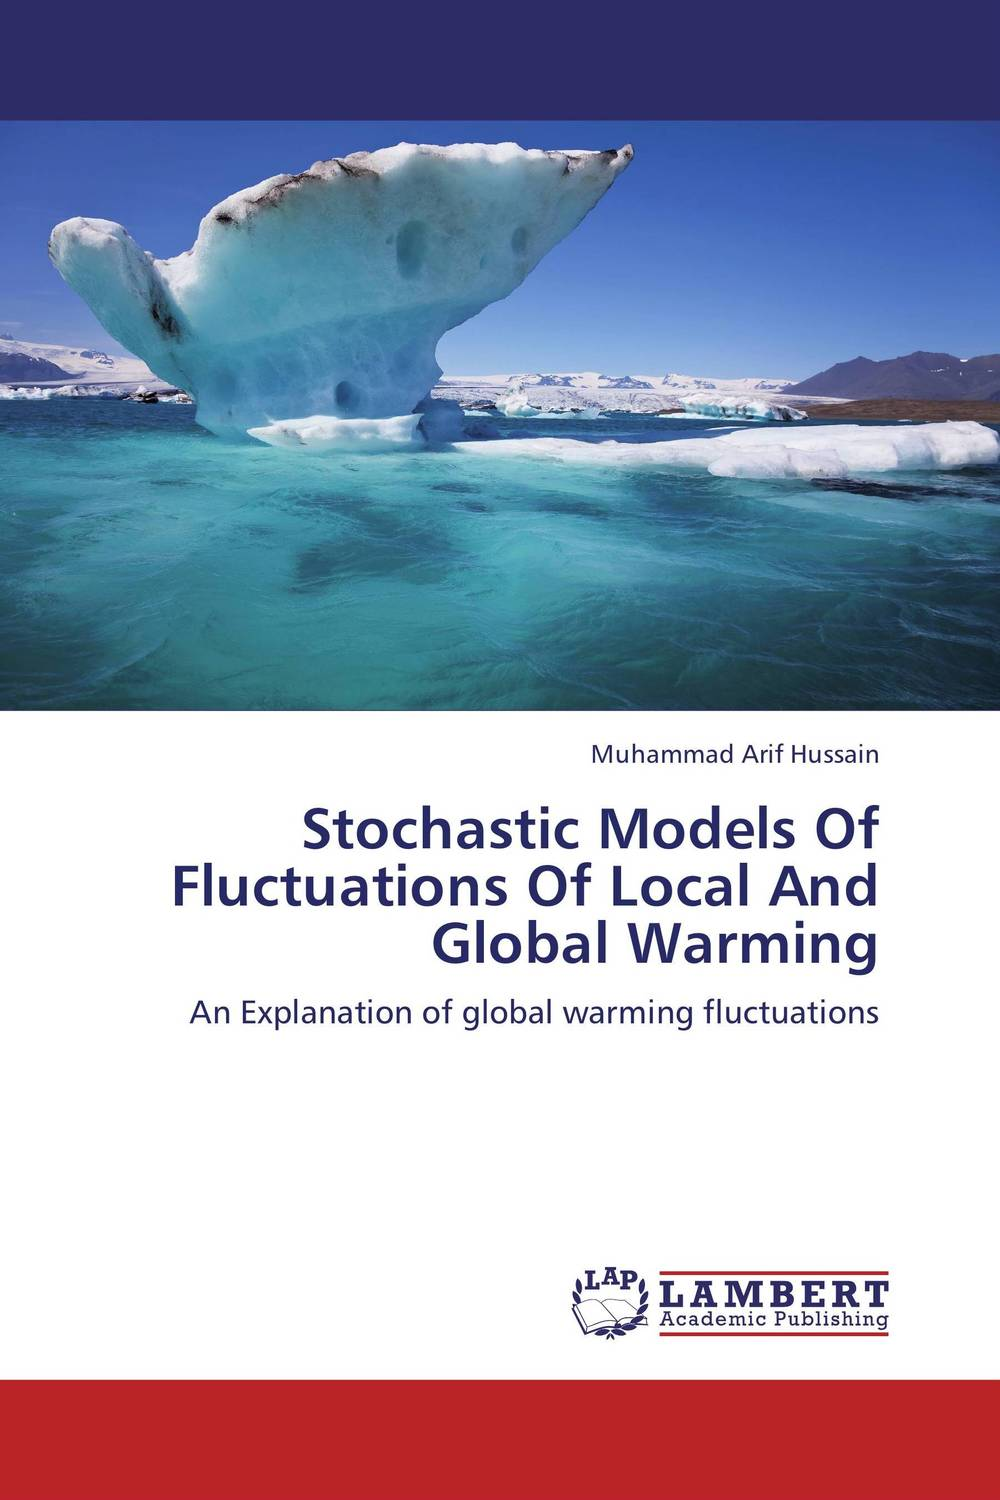 Stochastic Models Of Fluctuations Of Local And Global Warming the application of global ethics to solve local improprieties